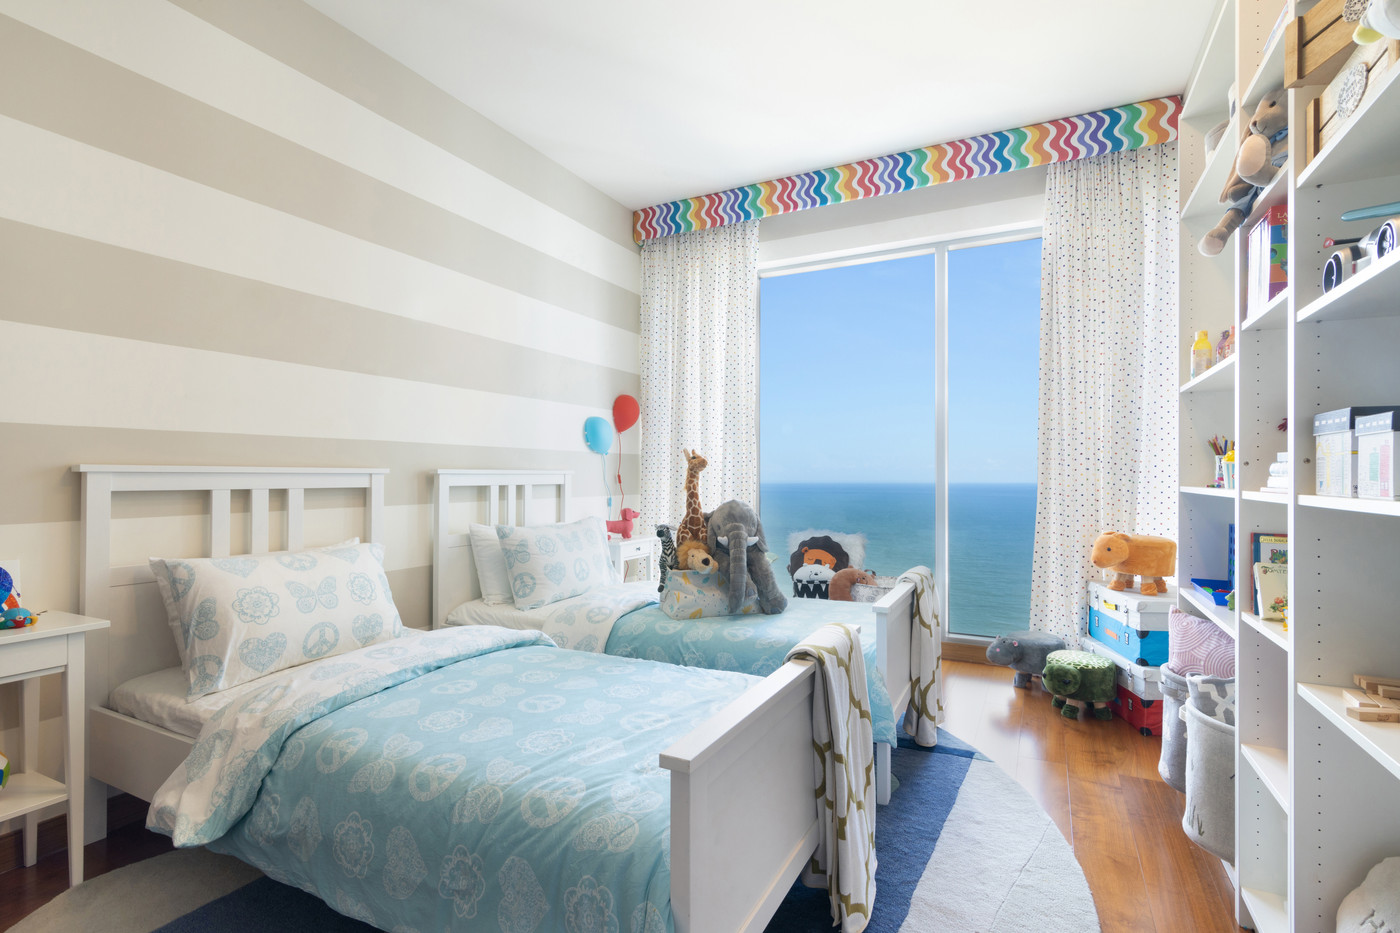 Childrens Bedroom Interior Design by Creative Heritage Interiors